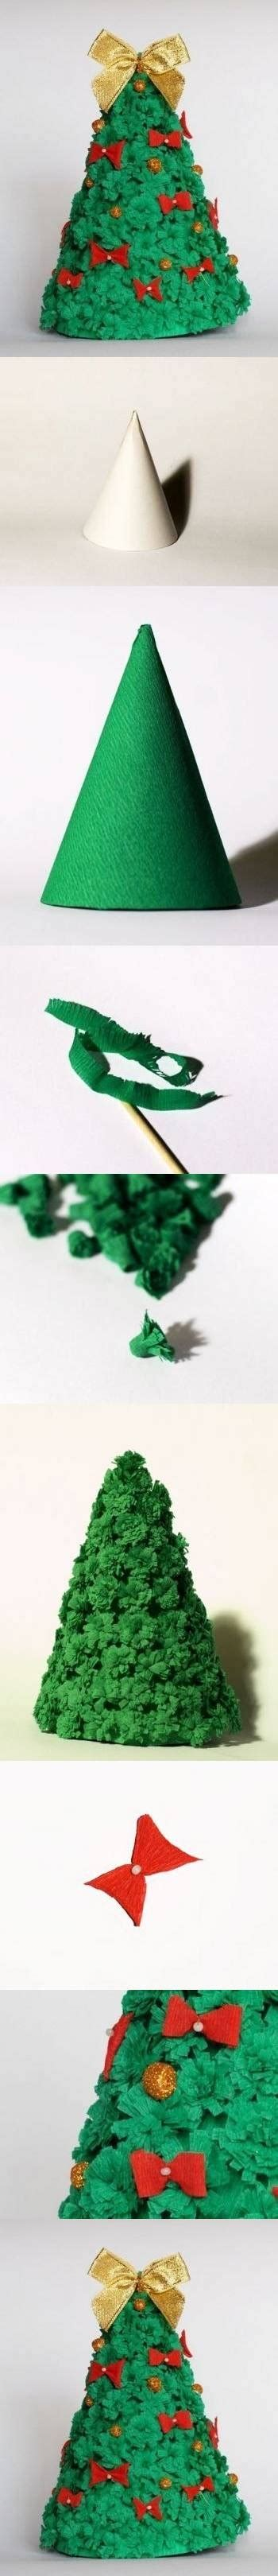 diy corrugated crepe paper christmas tree pictures photos